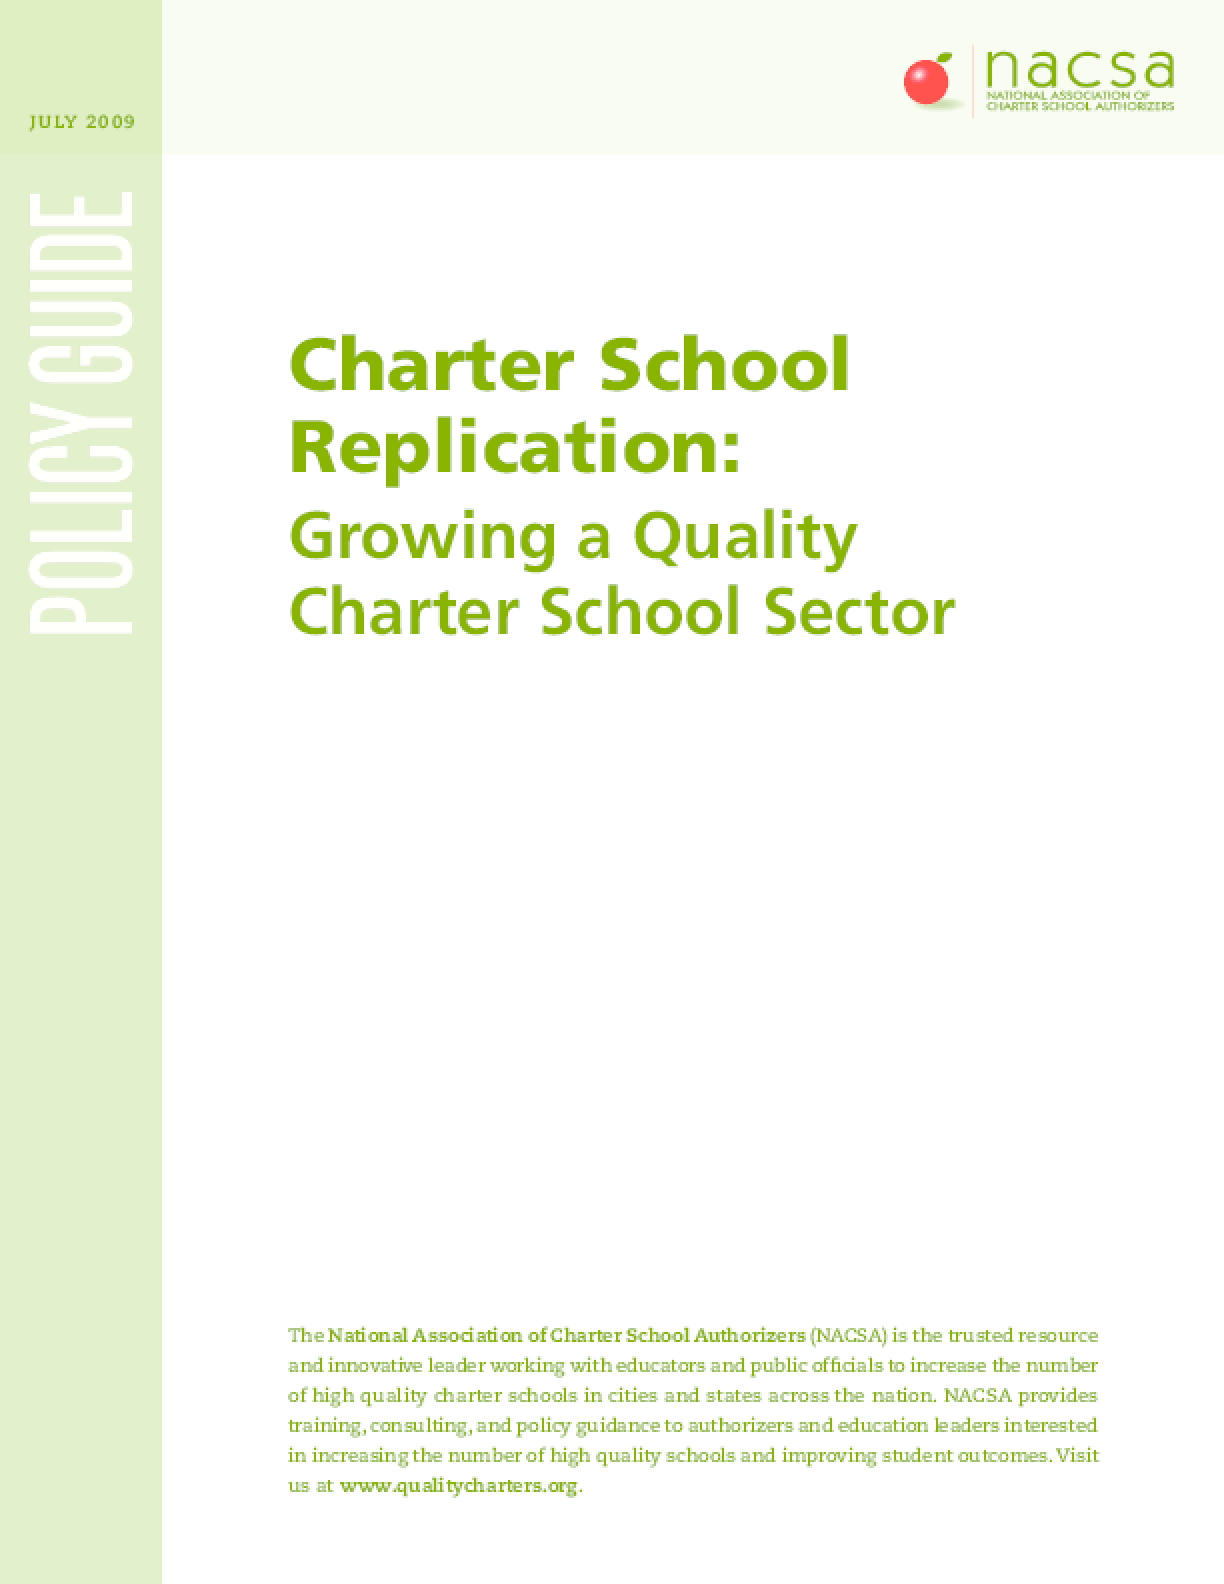 Charter School Replication: Growing a Quality Charter School Sector